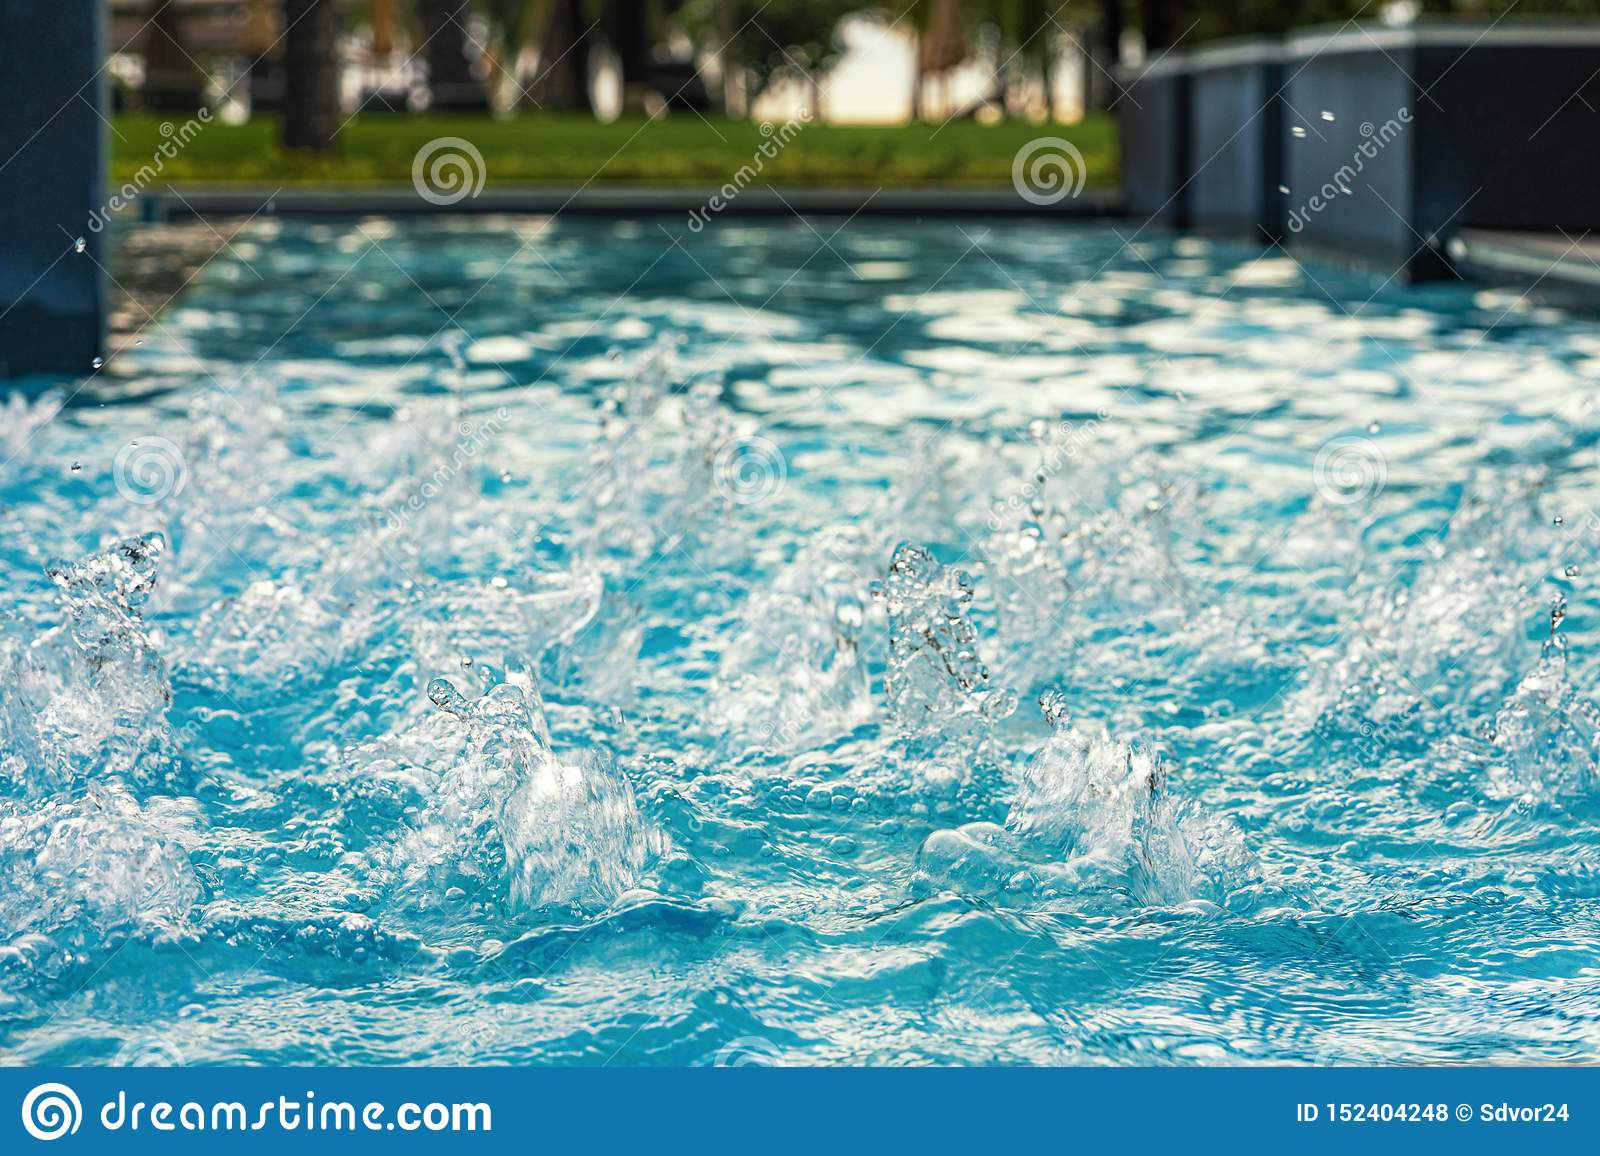 Blue clear fresh Water in jacuzzi. Spa massage background. azure color